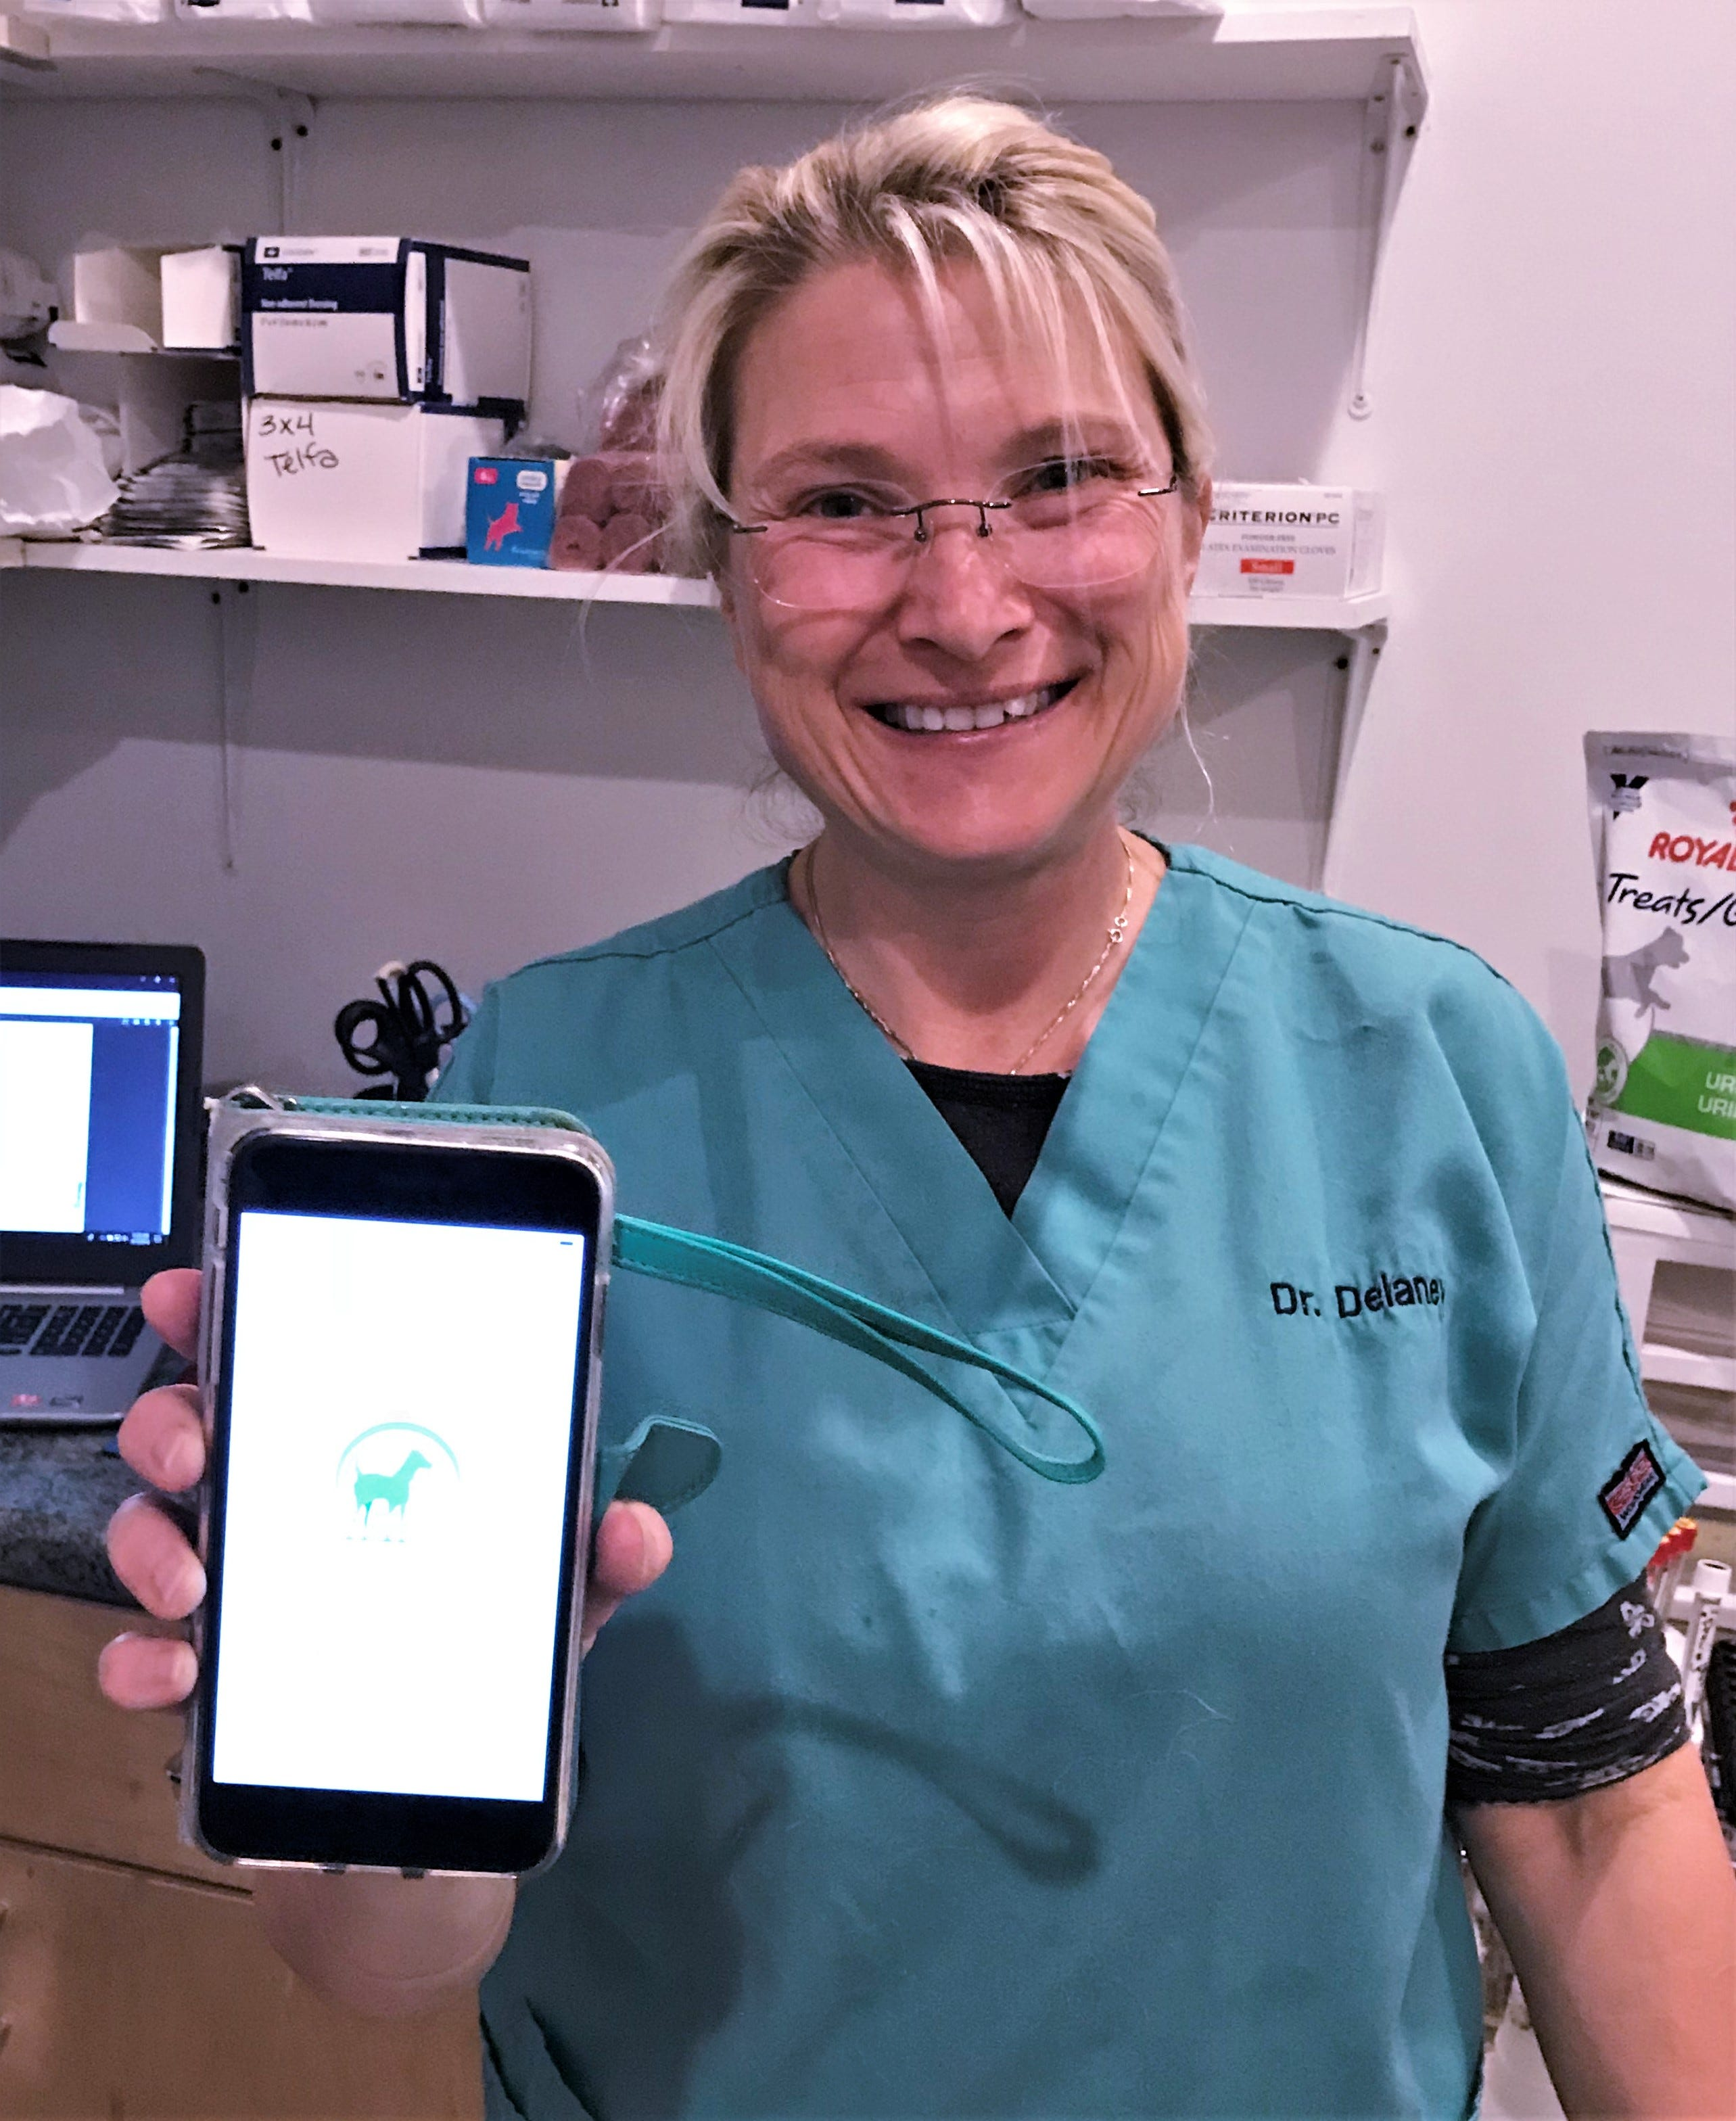 Is it safe to give your pet people food or meds? Elmira vet creates app for that